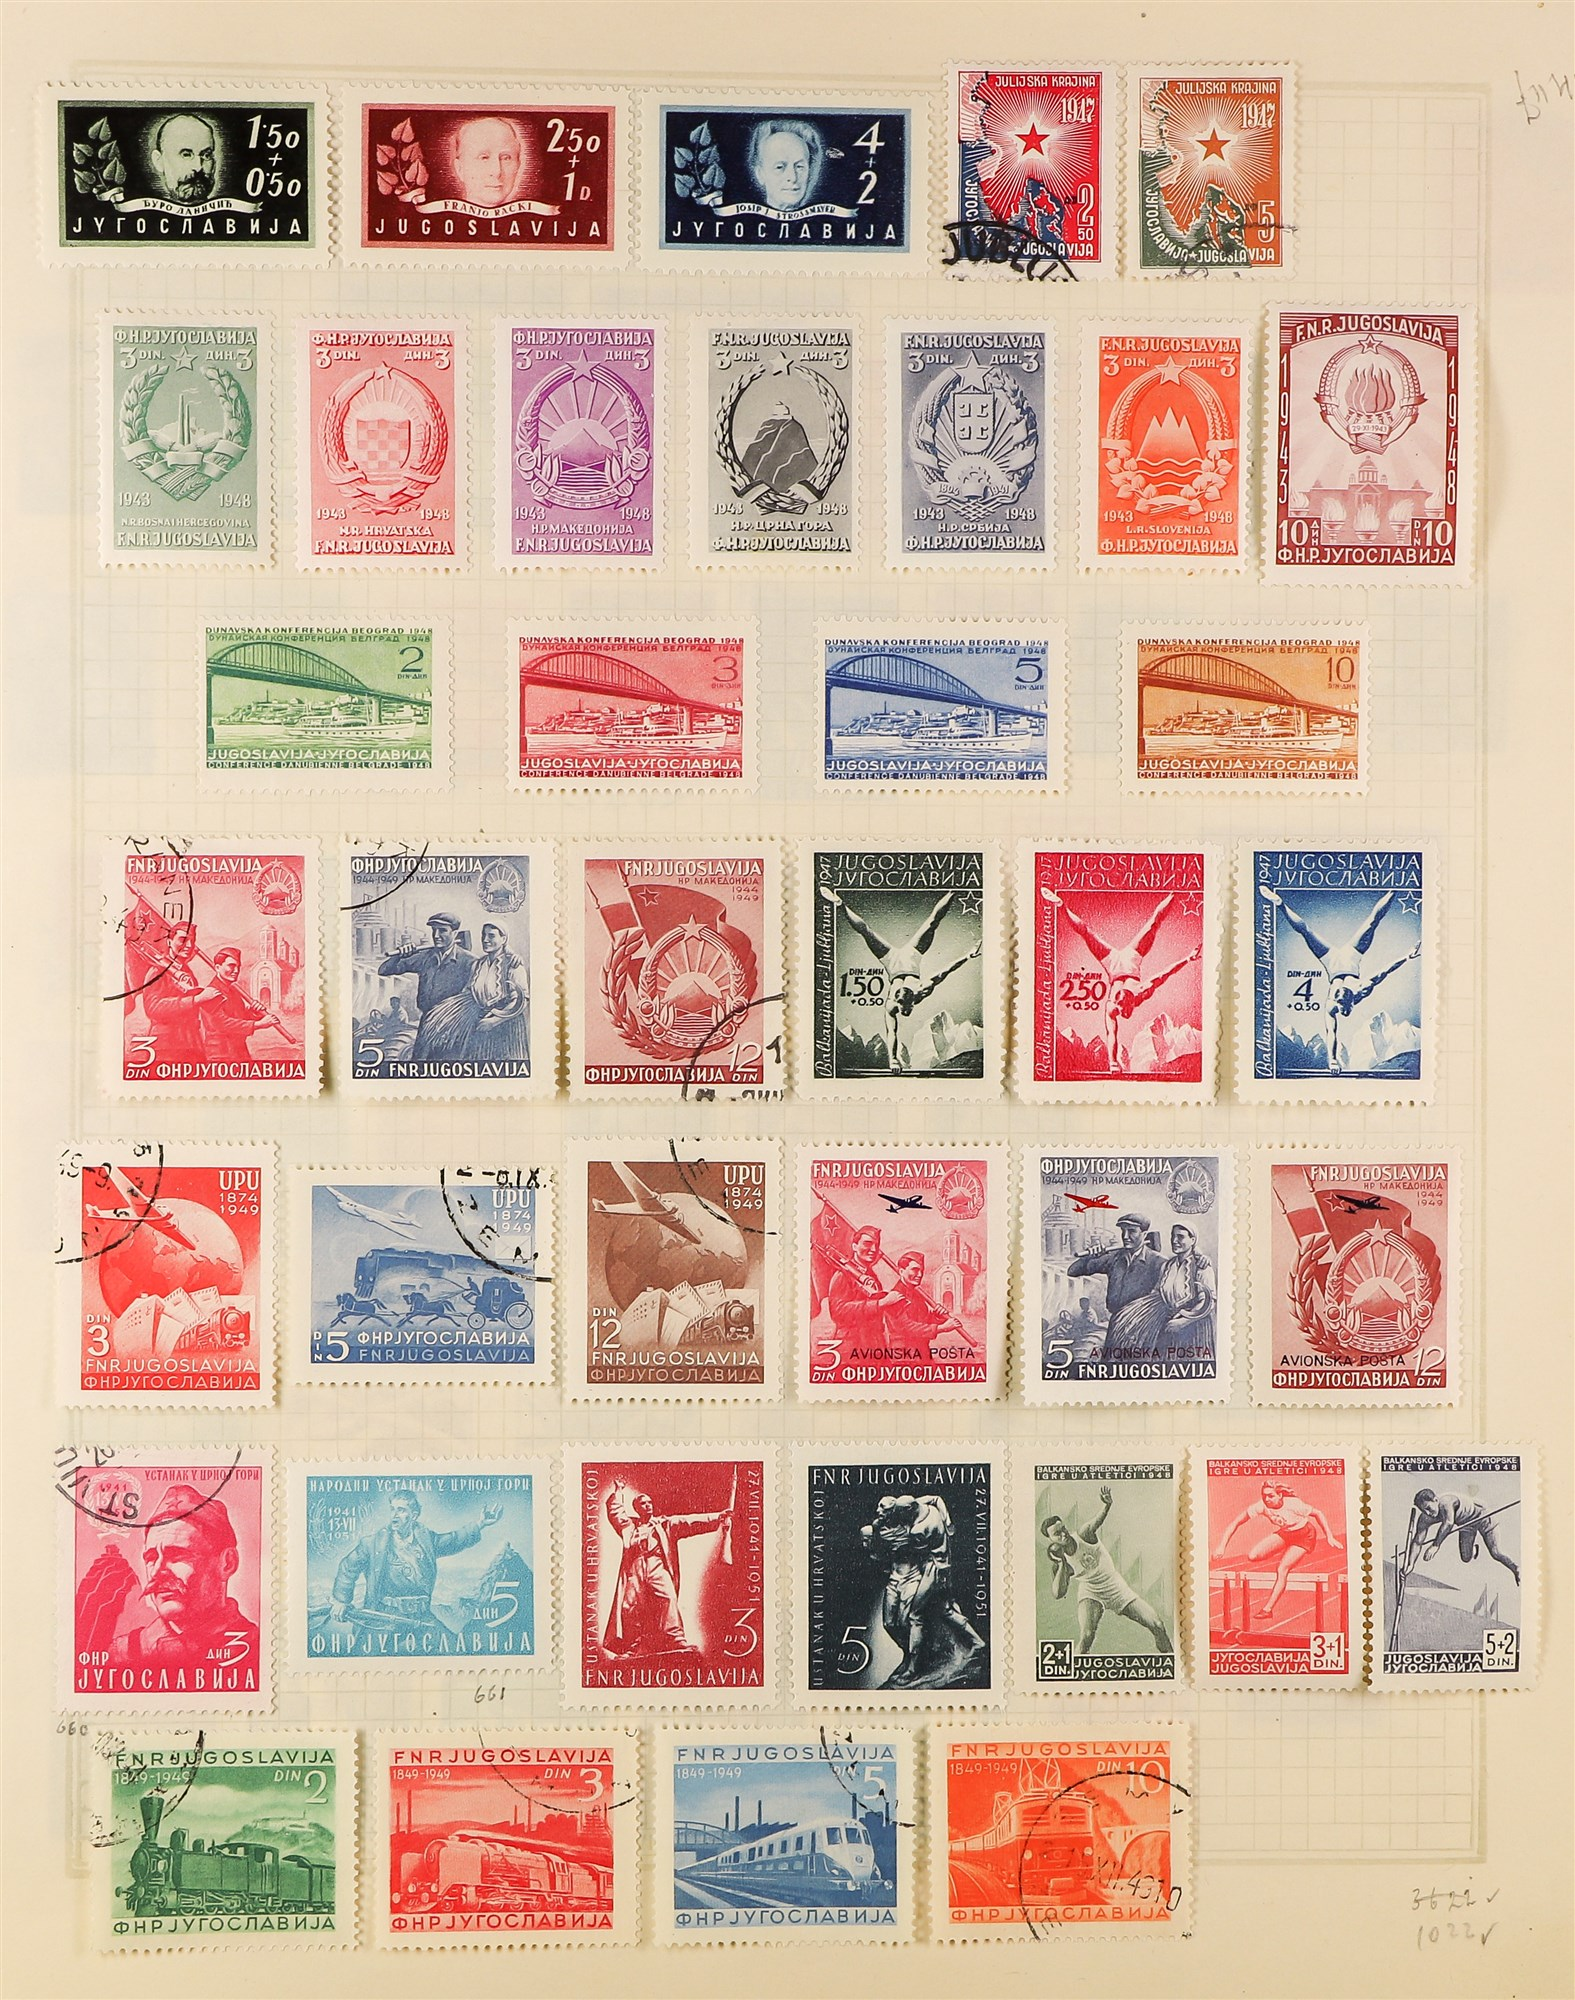 YUGOSLAVIA 1919-80 COLLECTION of mint and used issues in an album, incl. extensive Chainbreakers, - Image 14 of 17